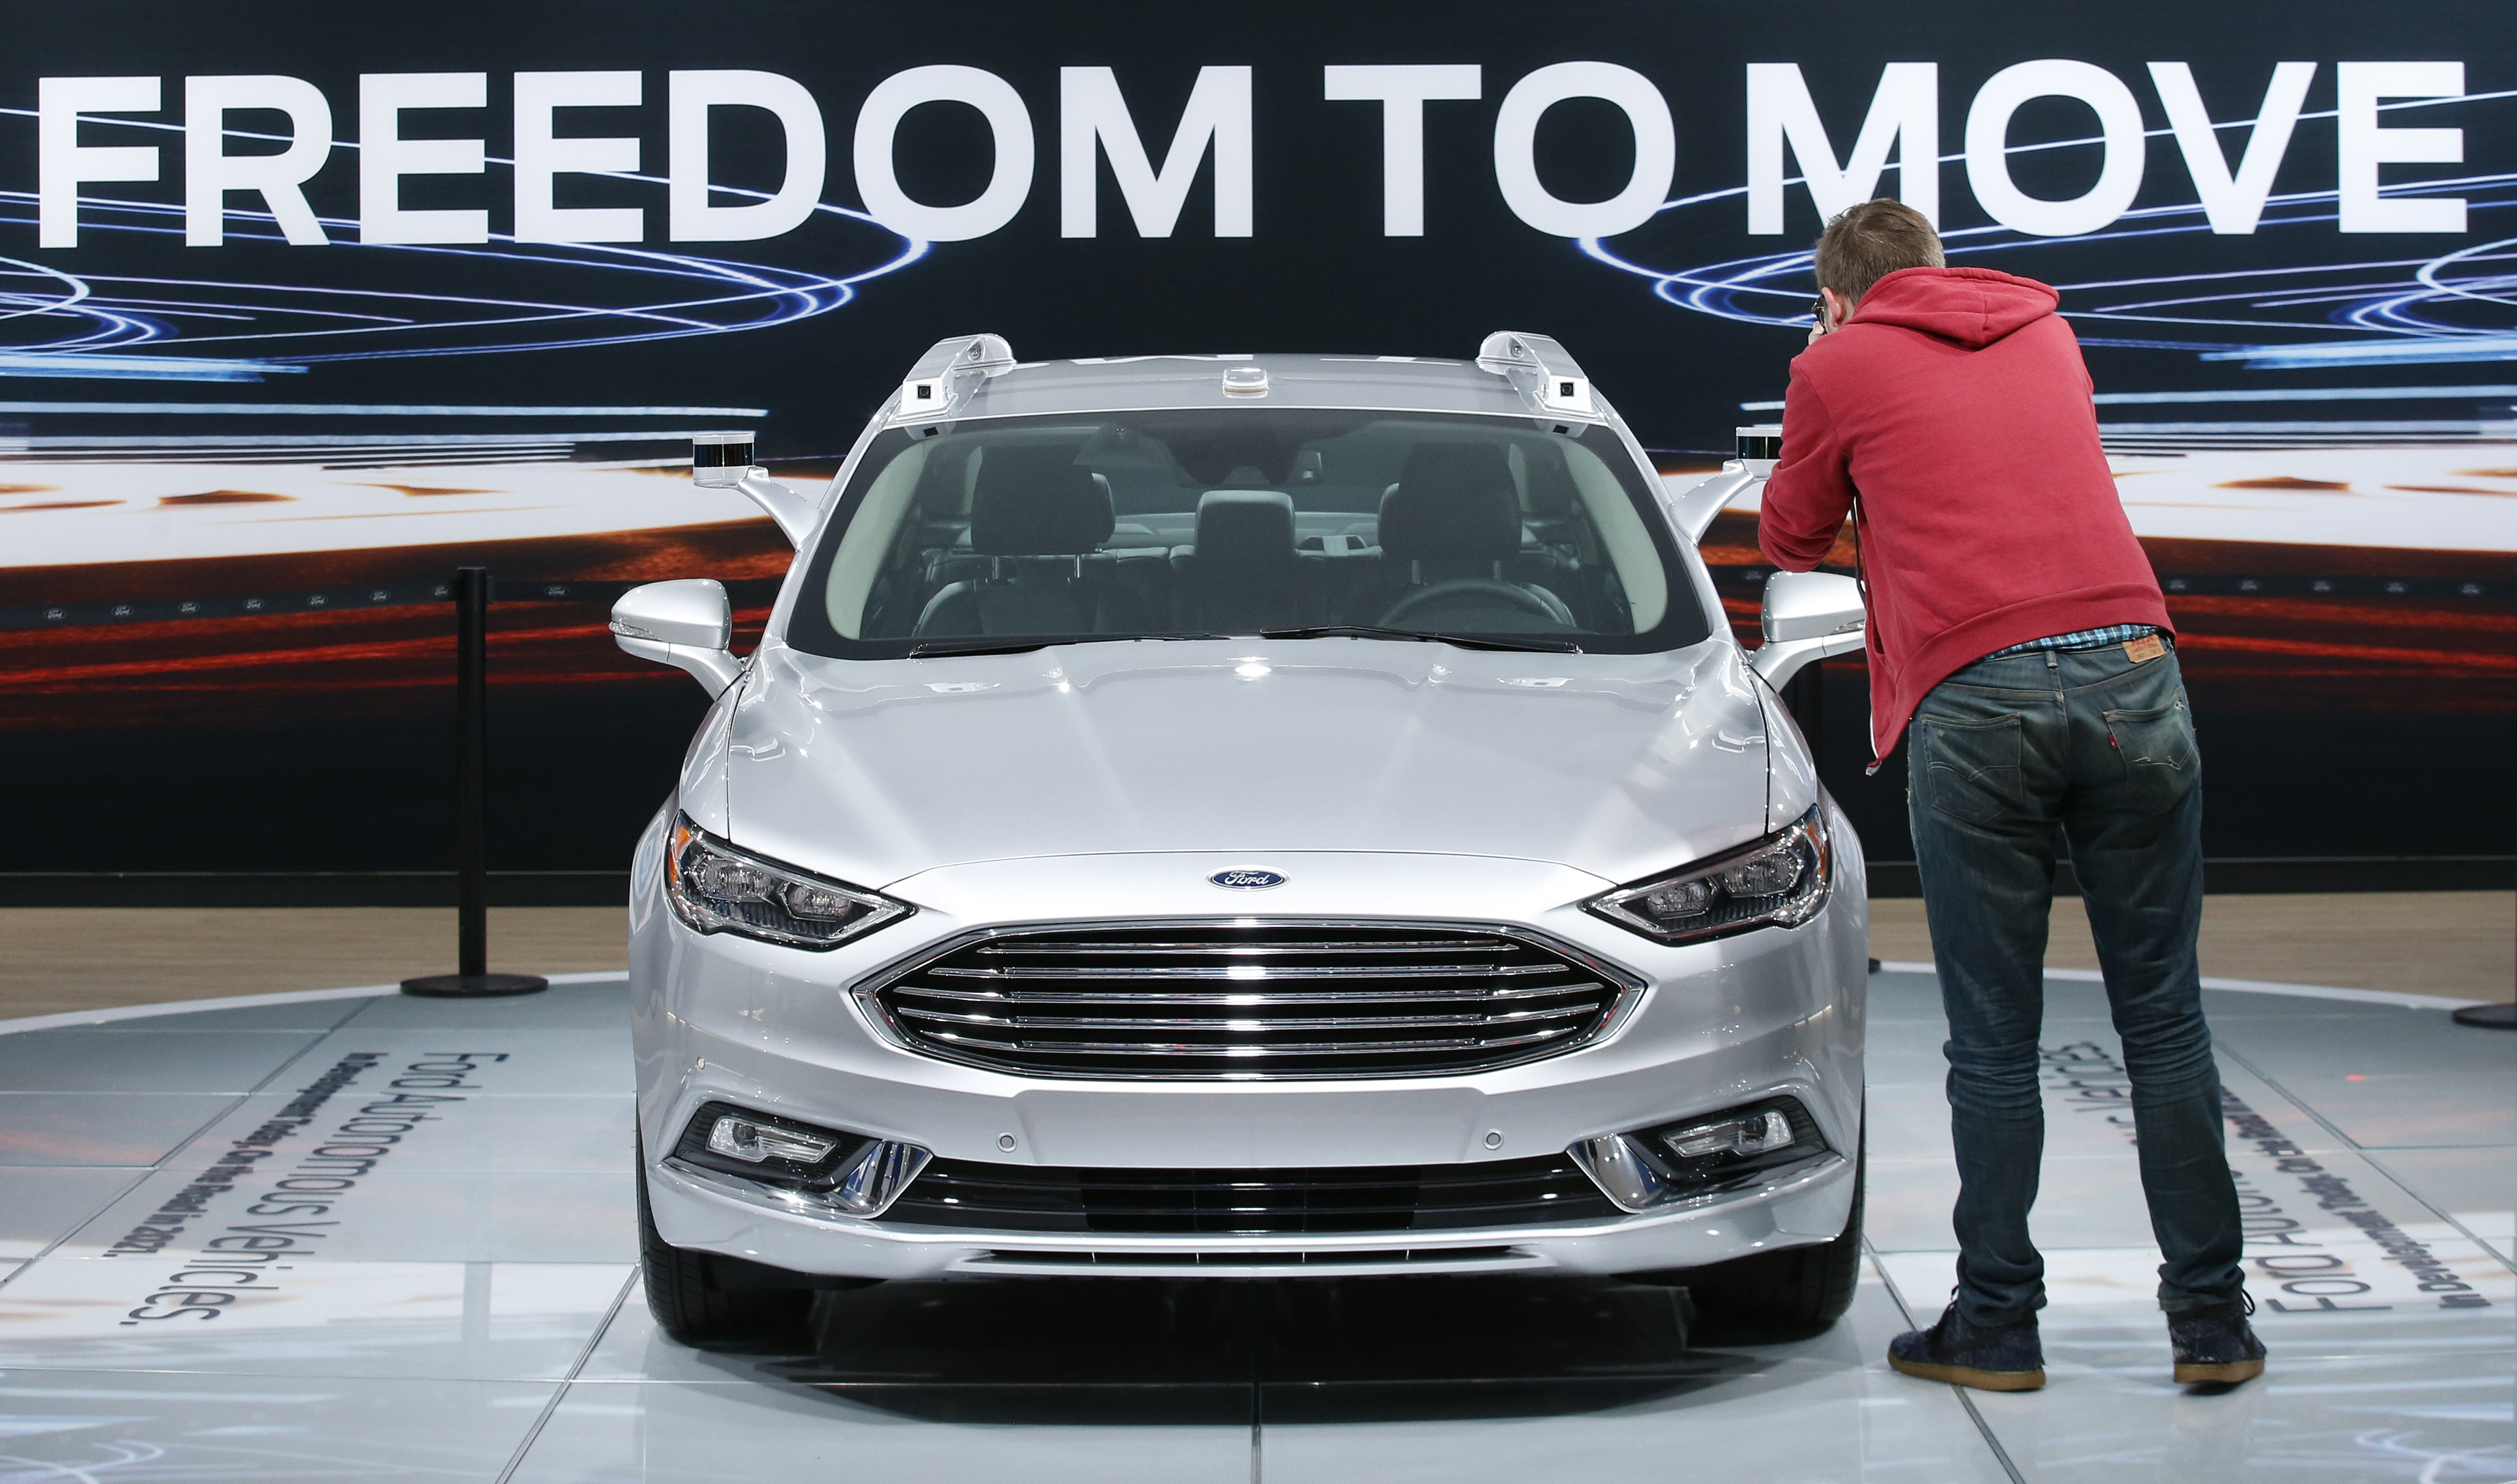 A Ford Fusion Titanium Hybrid autonomous car is displayed during the North American International Auto Show in Detroit